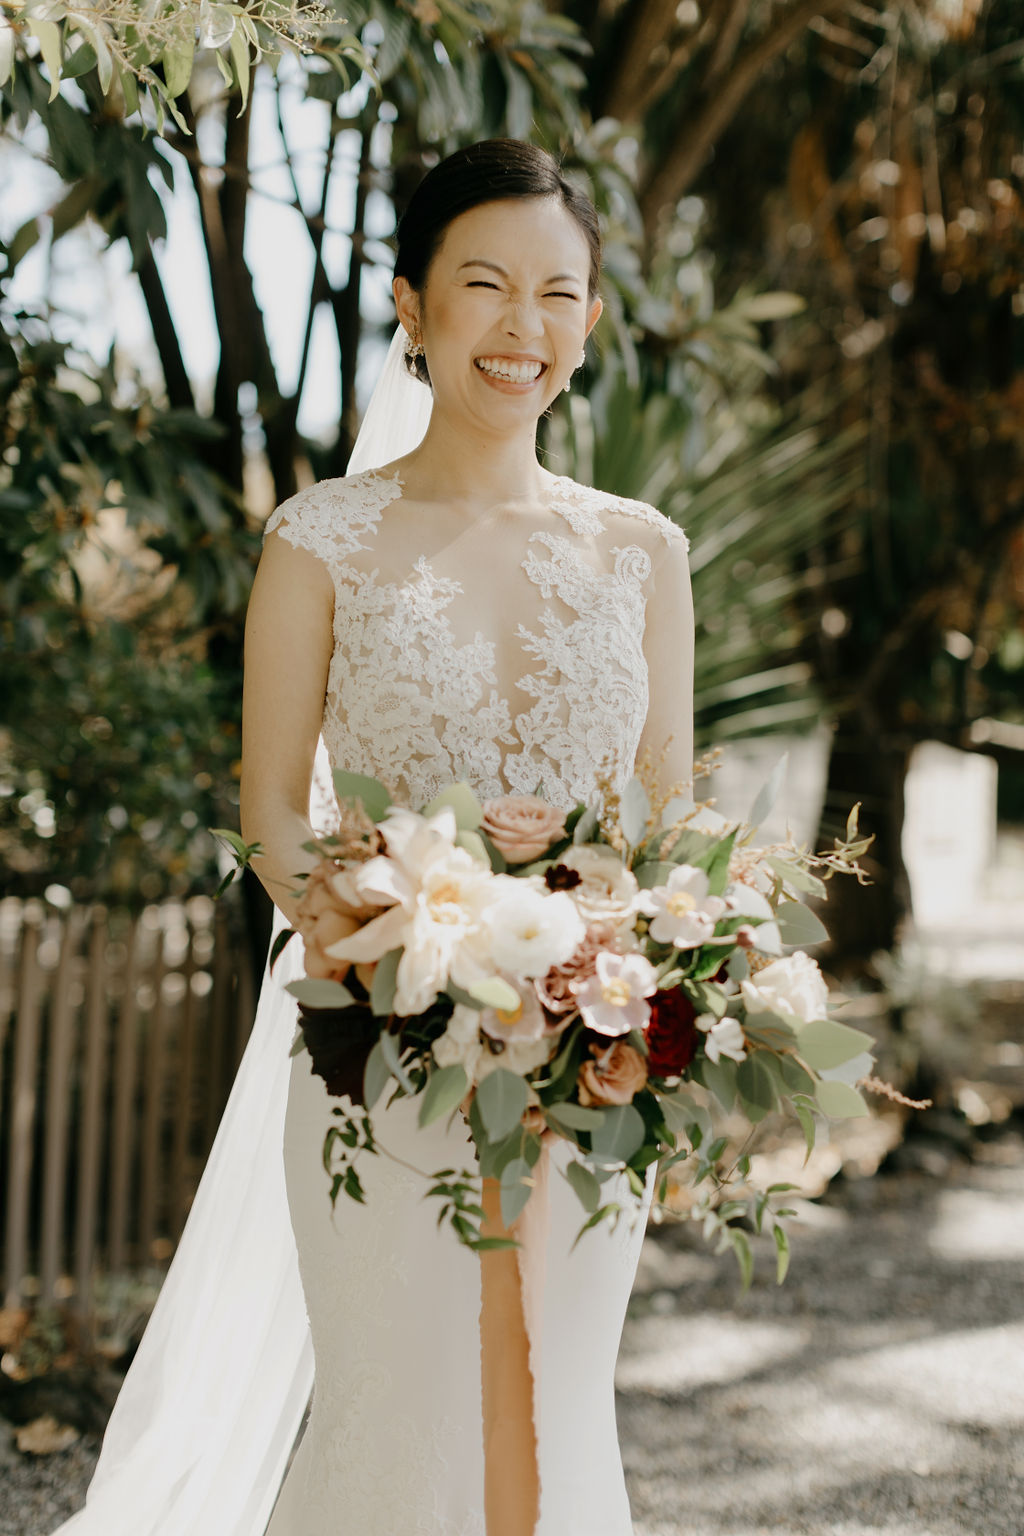 Deer Park Villa Wedding Planner Perfectly Planned Moments Nirav Patel Photography Bellevue Floral Co Bouquet.JPG